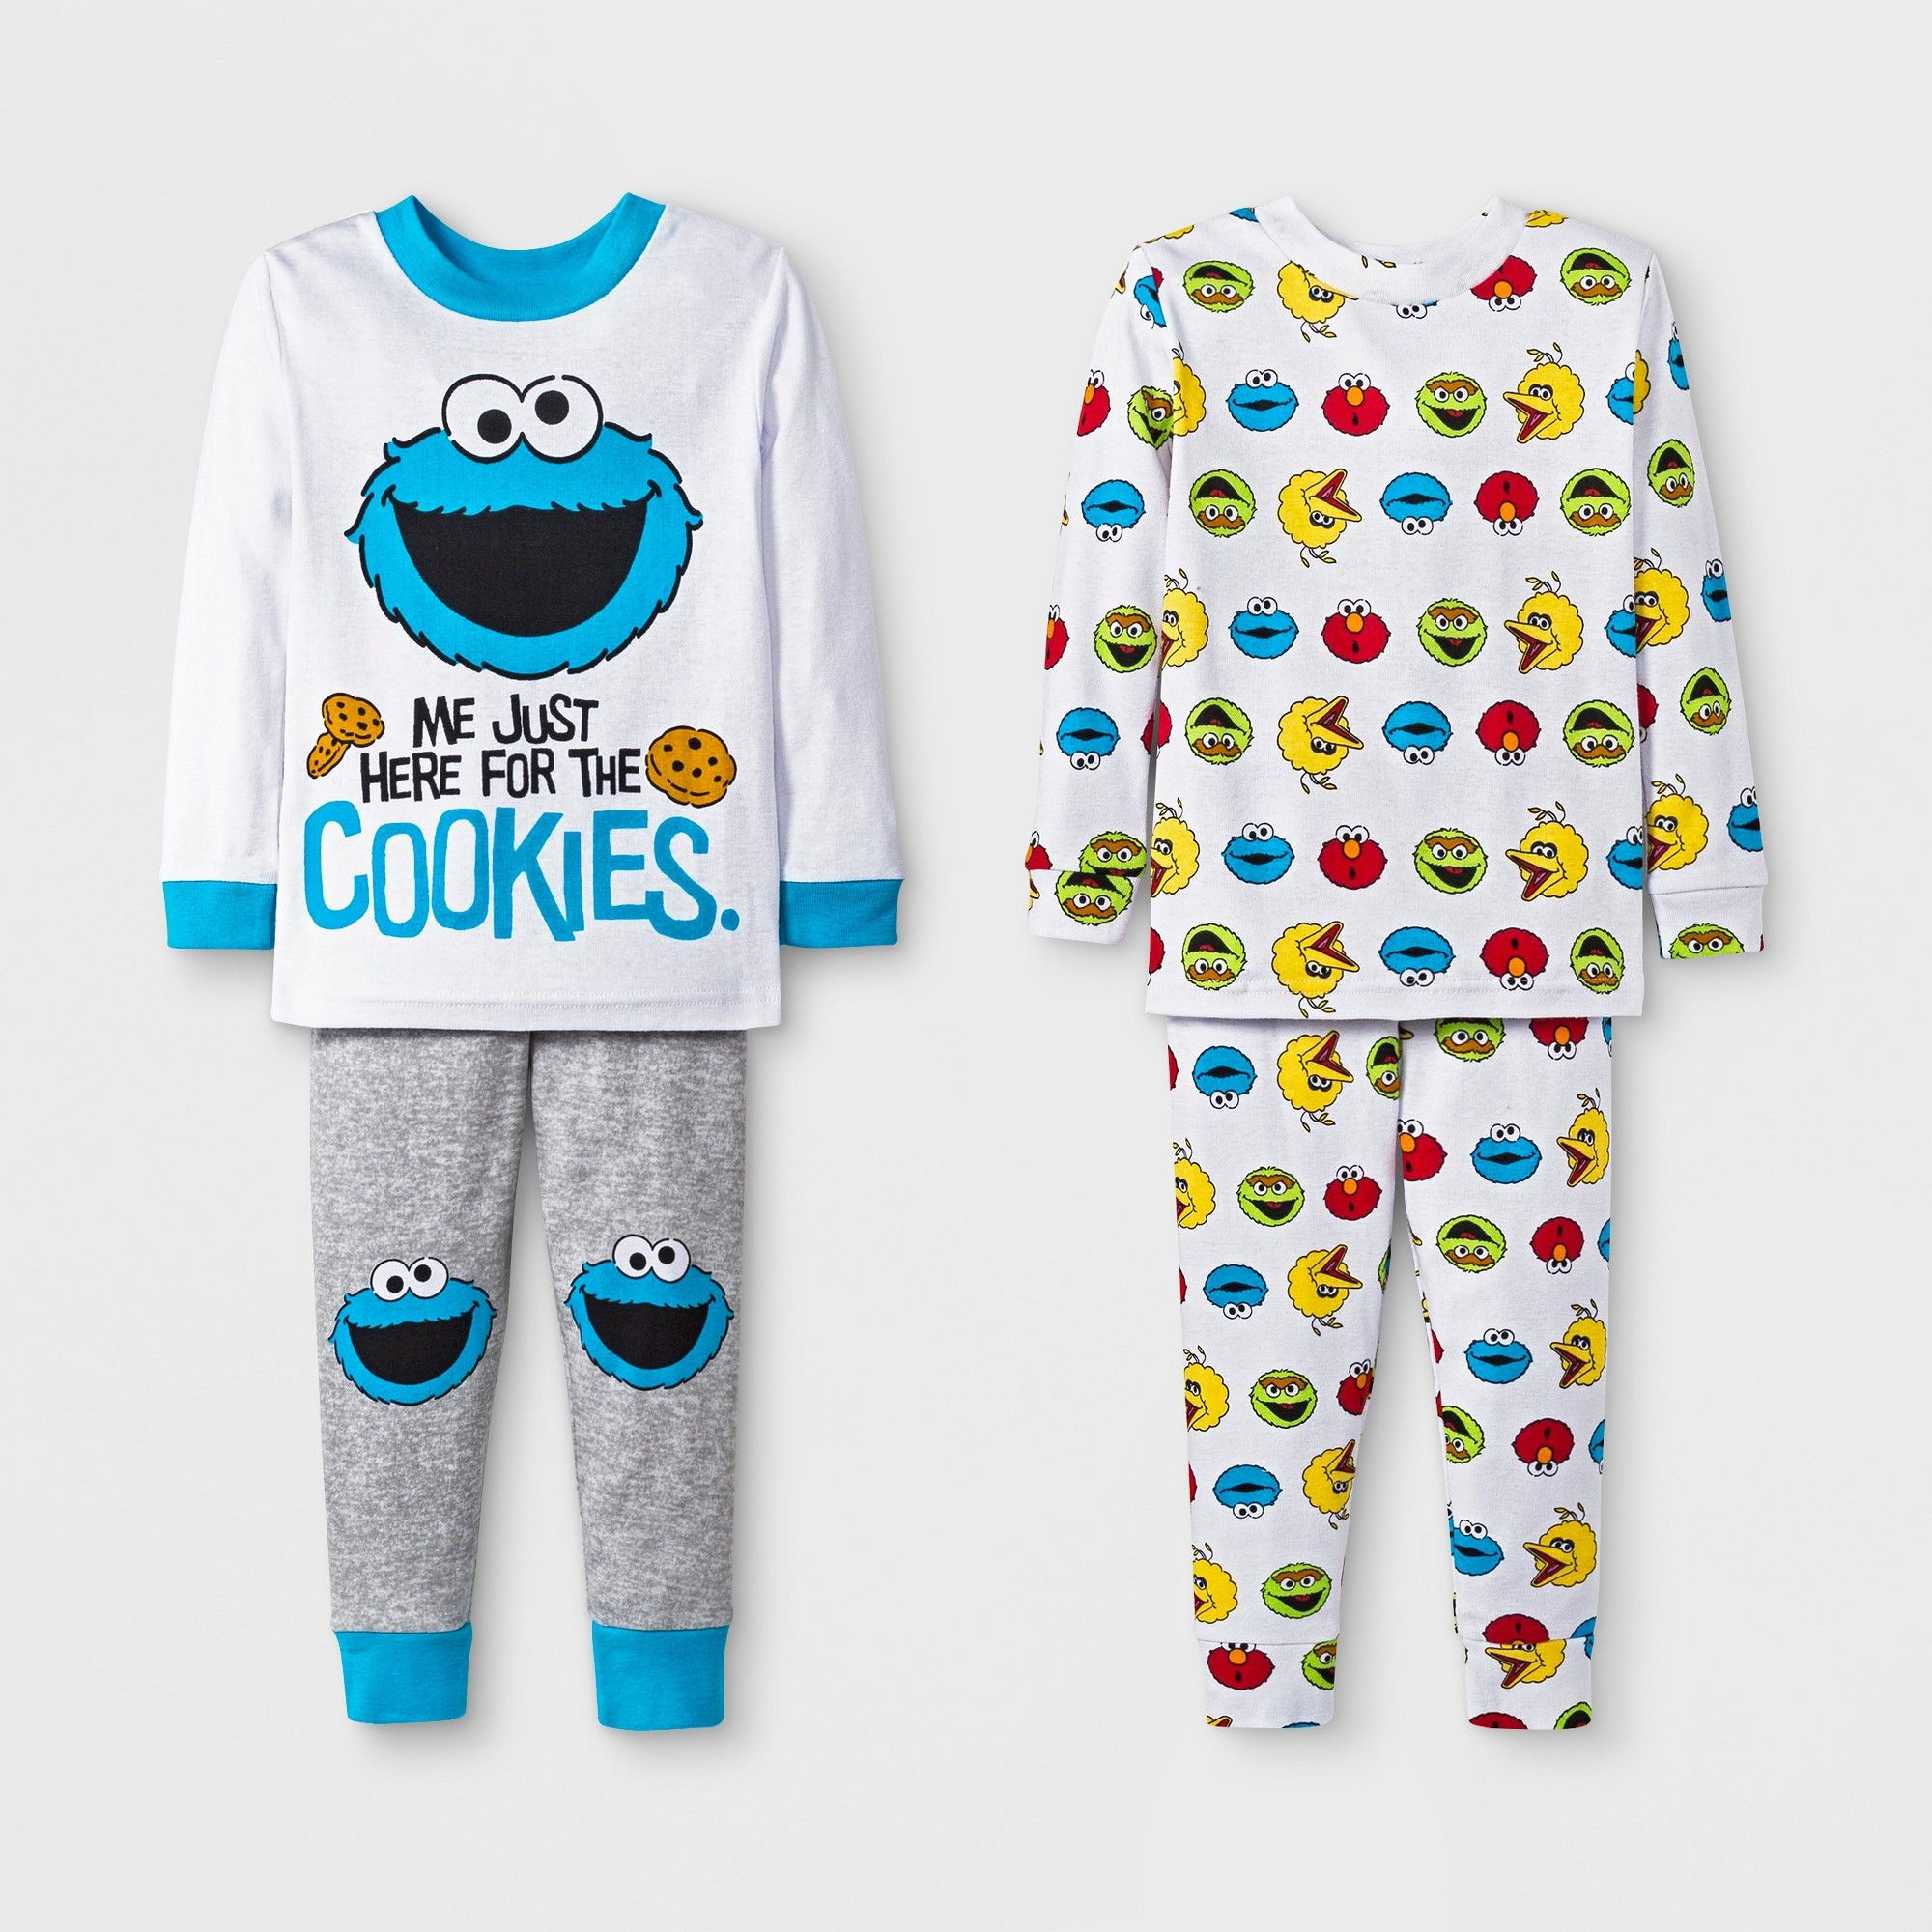 5b98082a5 Baby Boys' 4pc Sesame Street Pajama Set - White 18M | Products ...